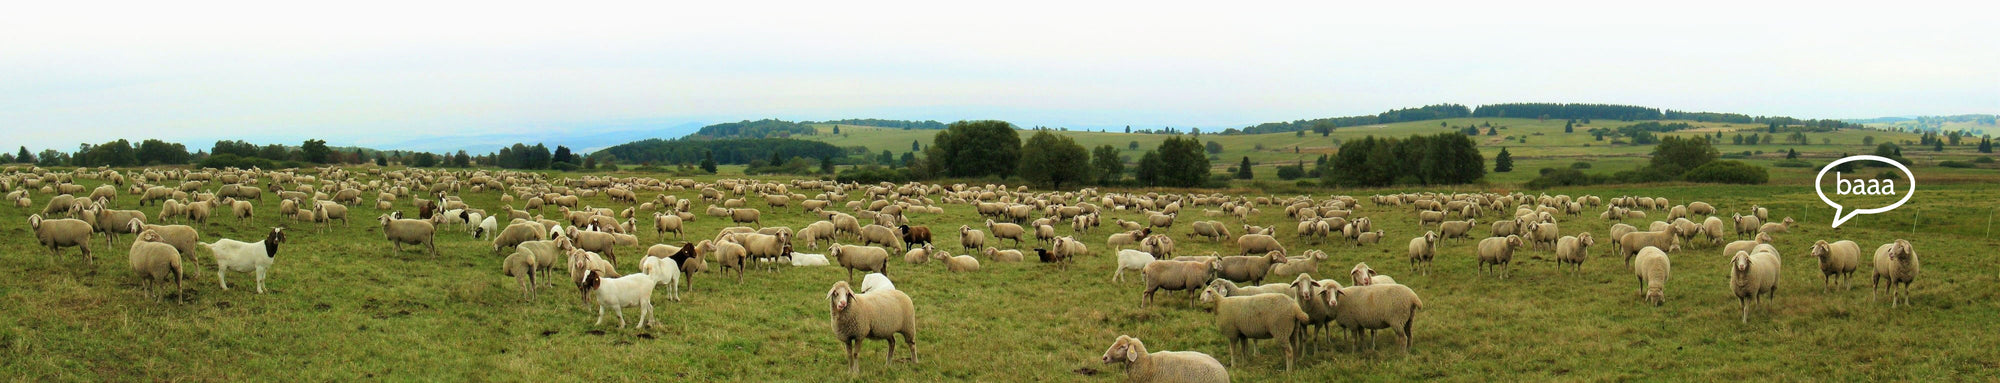 Merino sheep on a hilly field in New Zealand